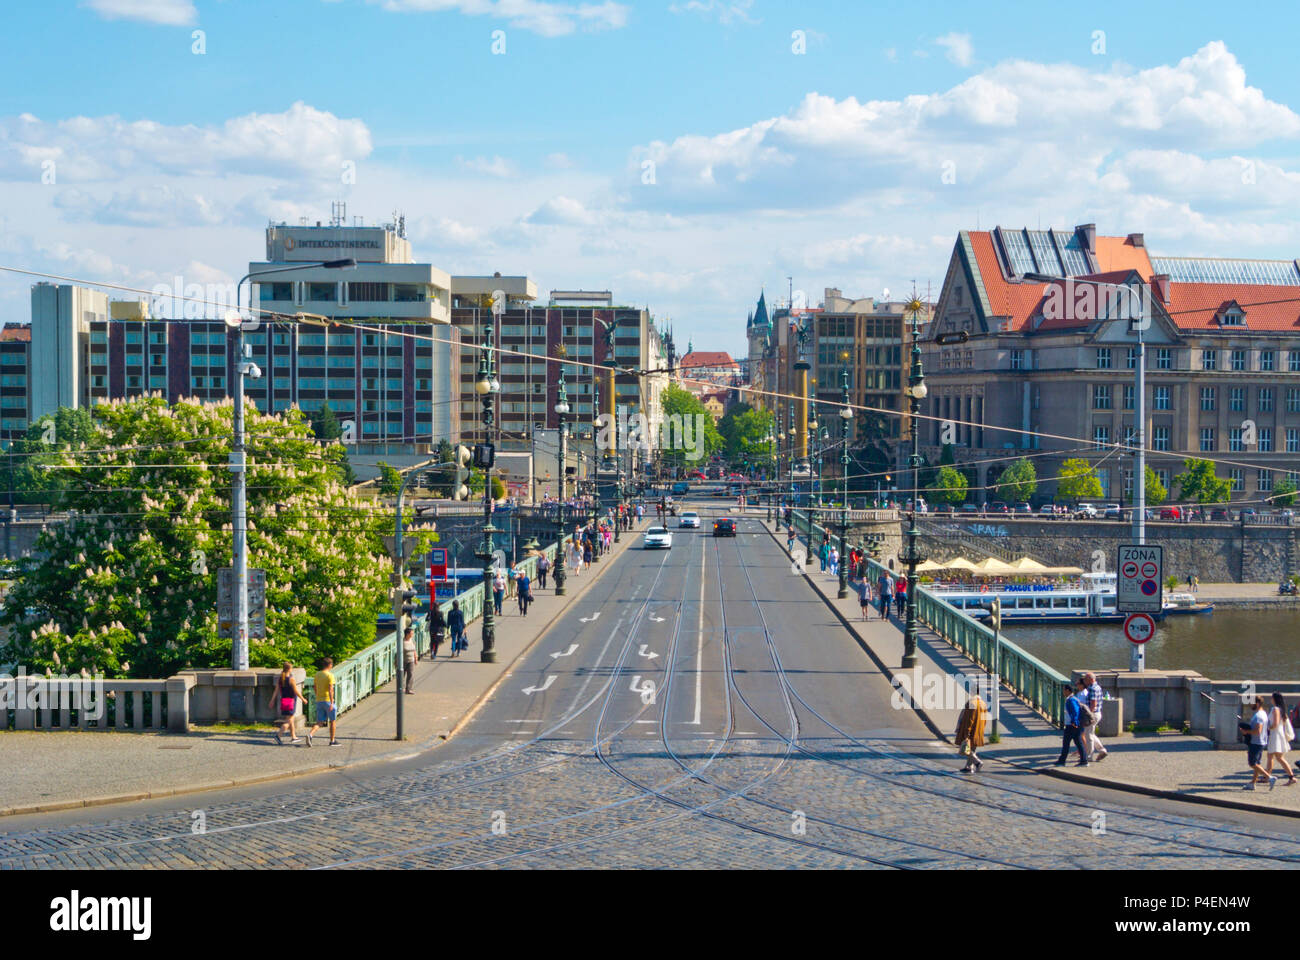 Cechuv most, between Metronome and old town, Prague, Czech Republic - Stock Image